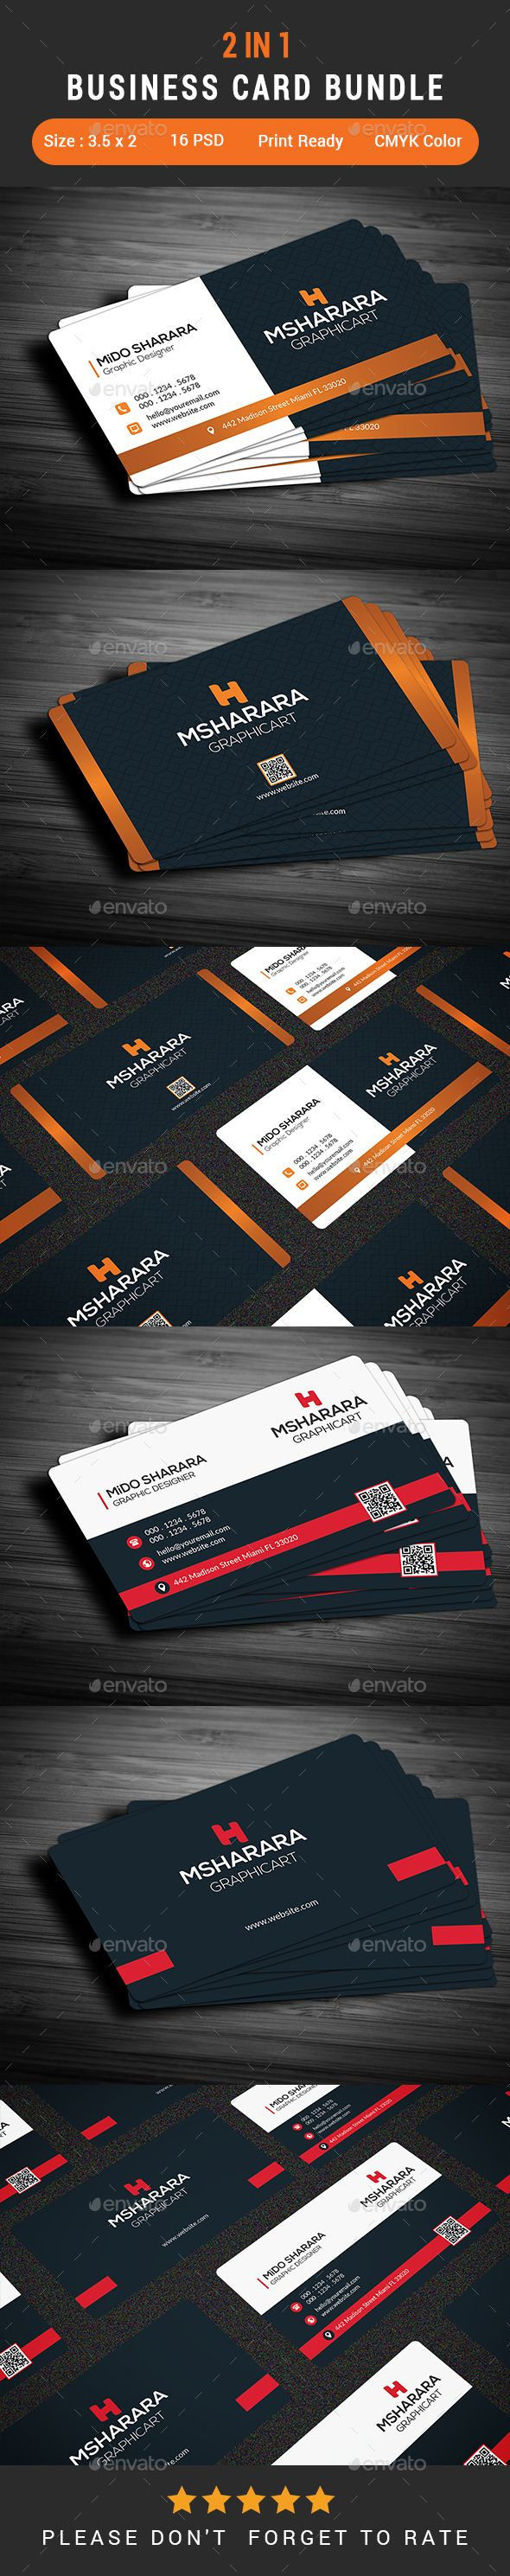 2 In 1 Business Card Bundle Business Cards Print Templates